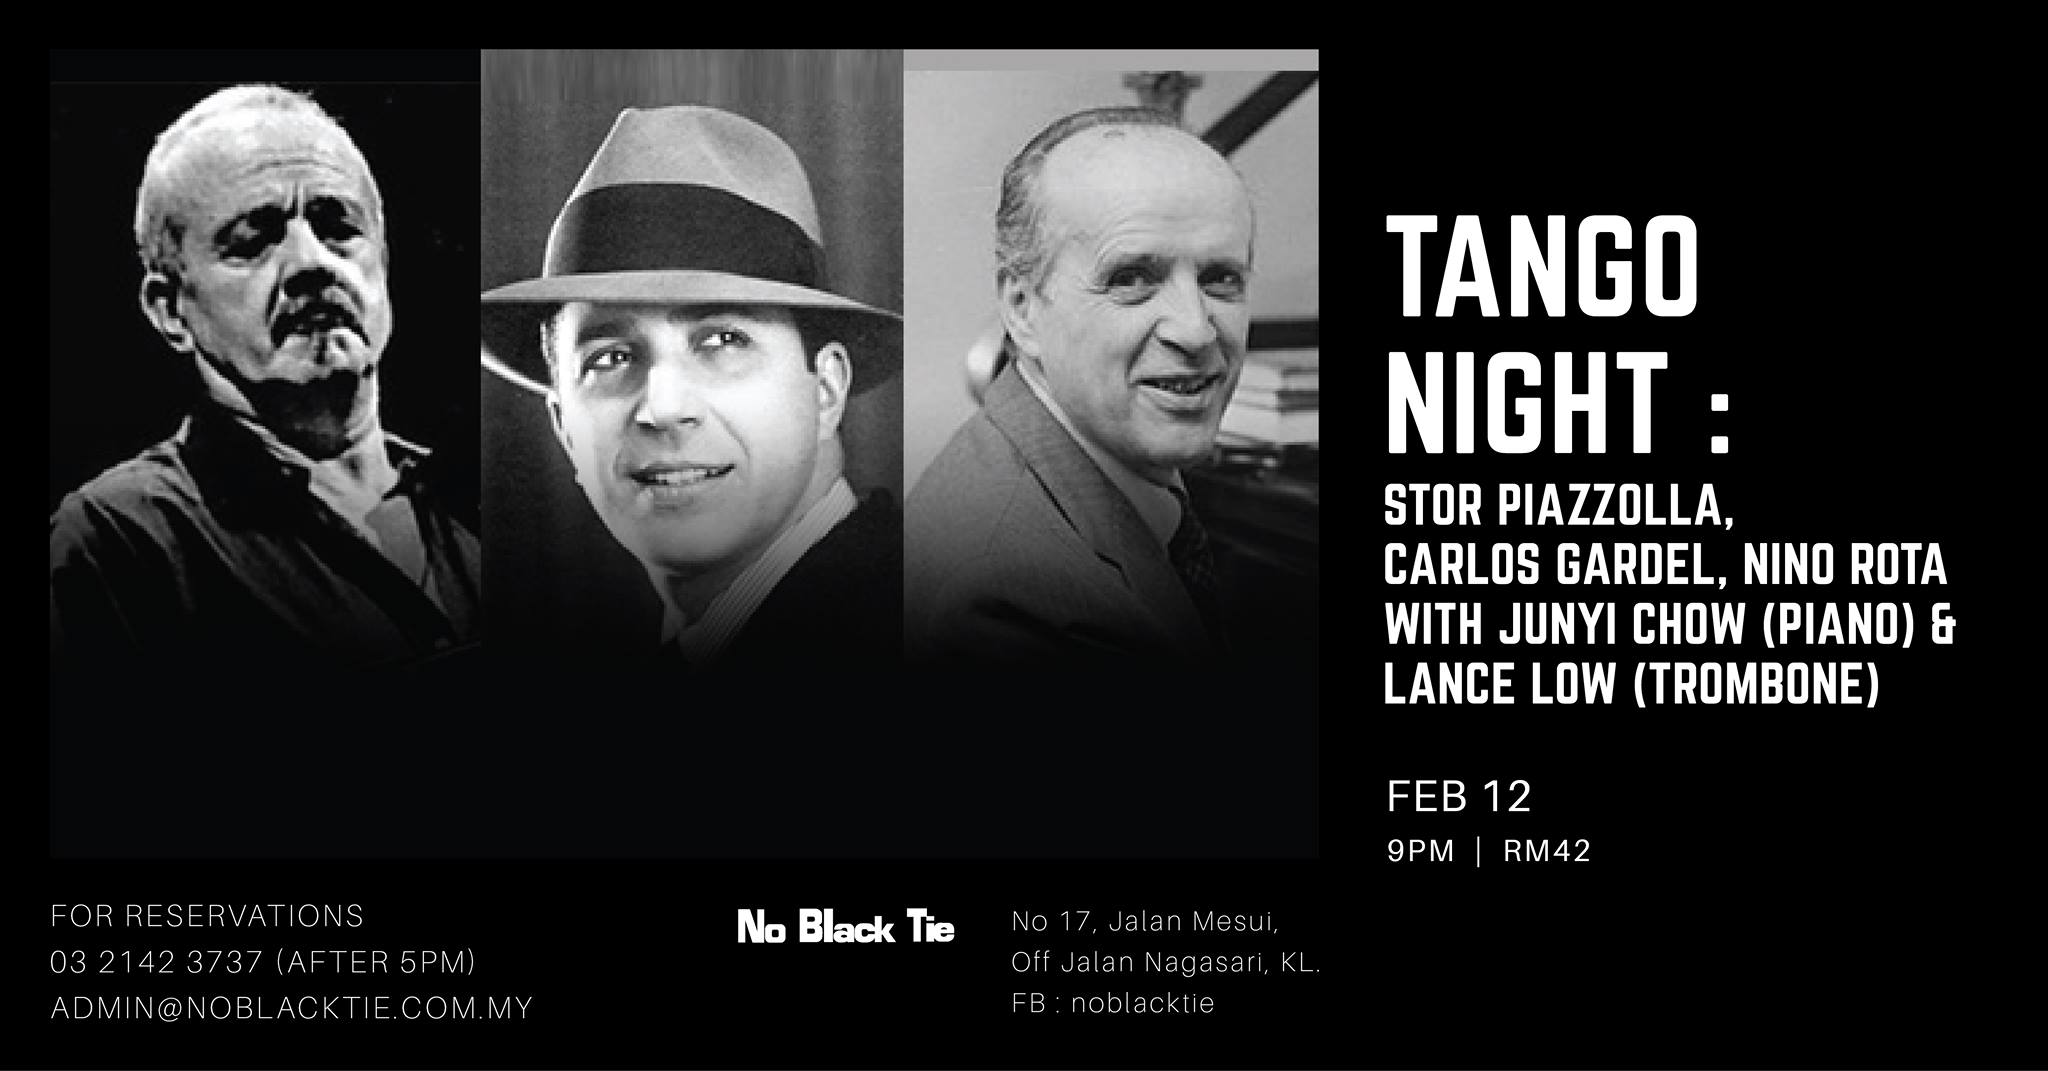 FEBRUARY 12: Tango Night at No Black Tie